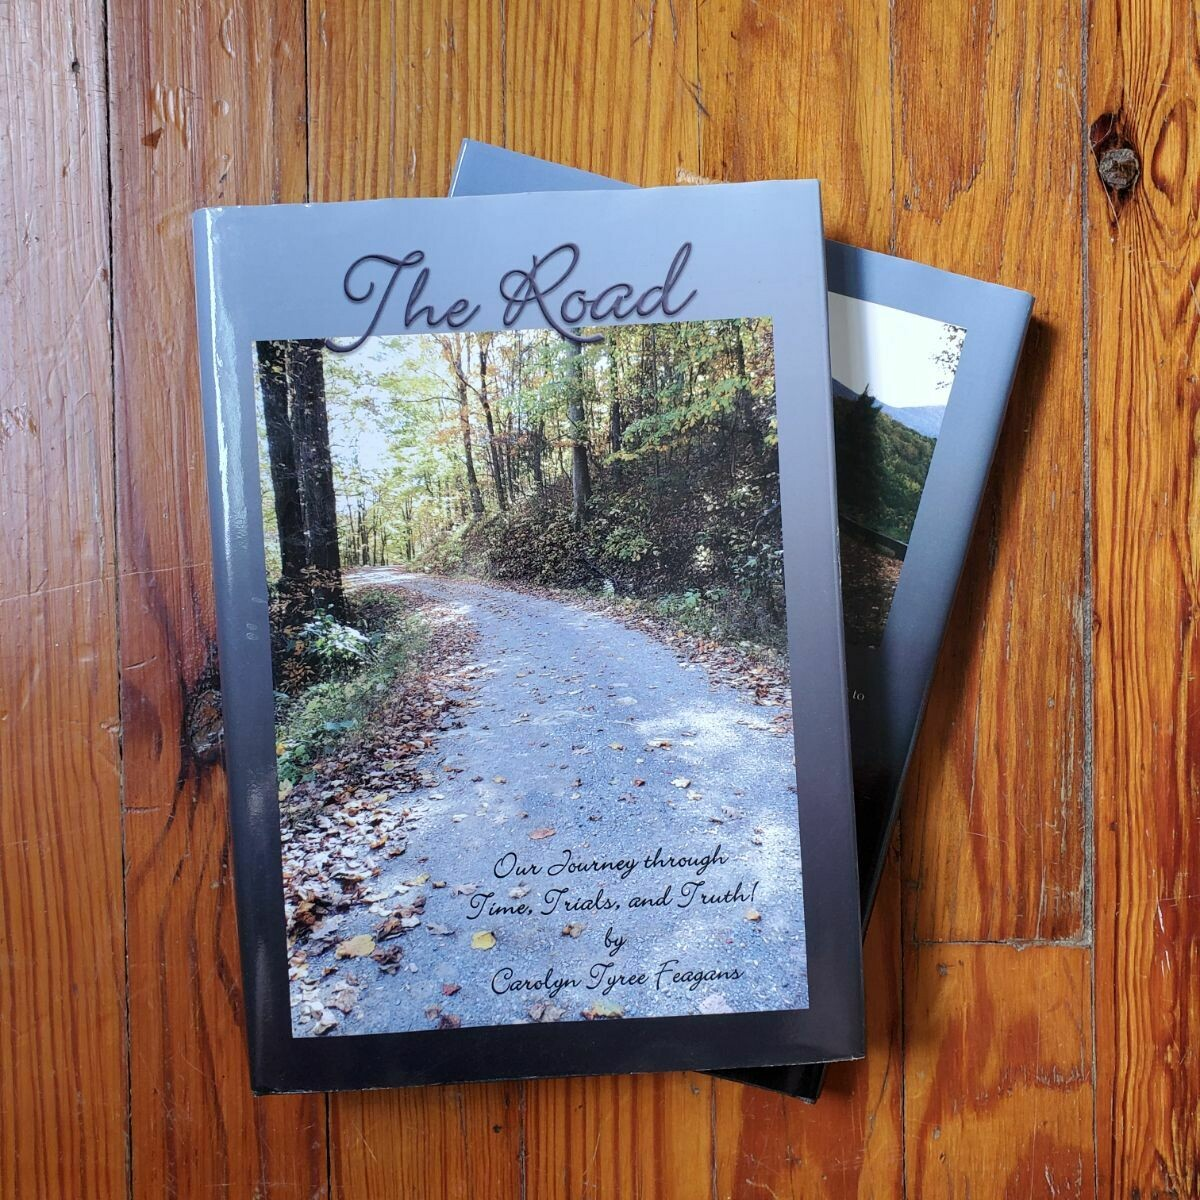 The Road by: Carolyn Tyree Feagens